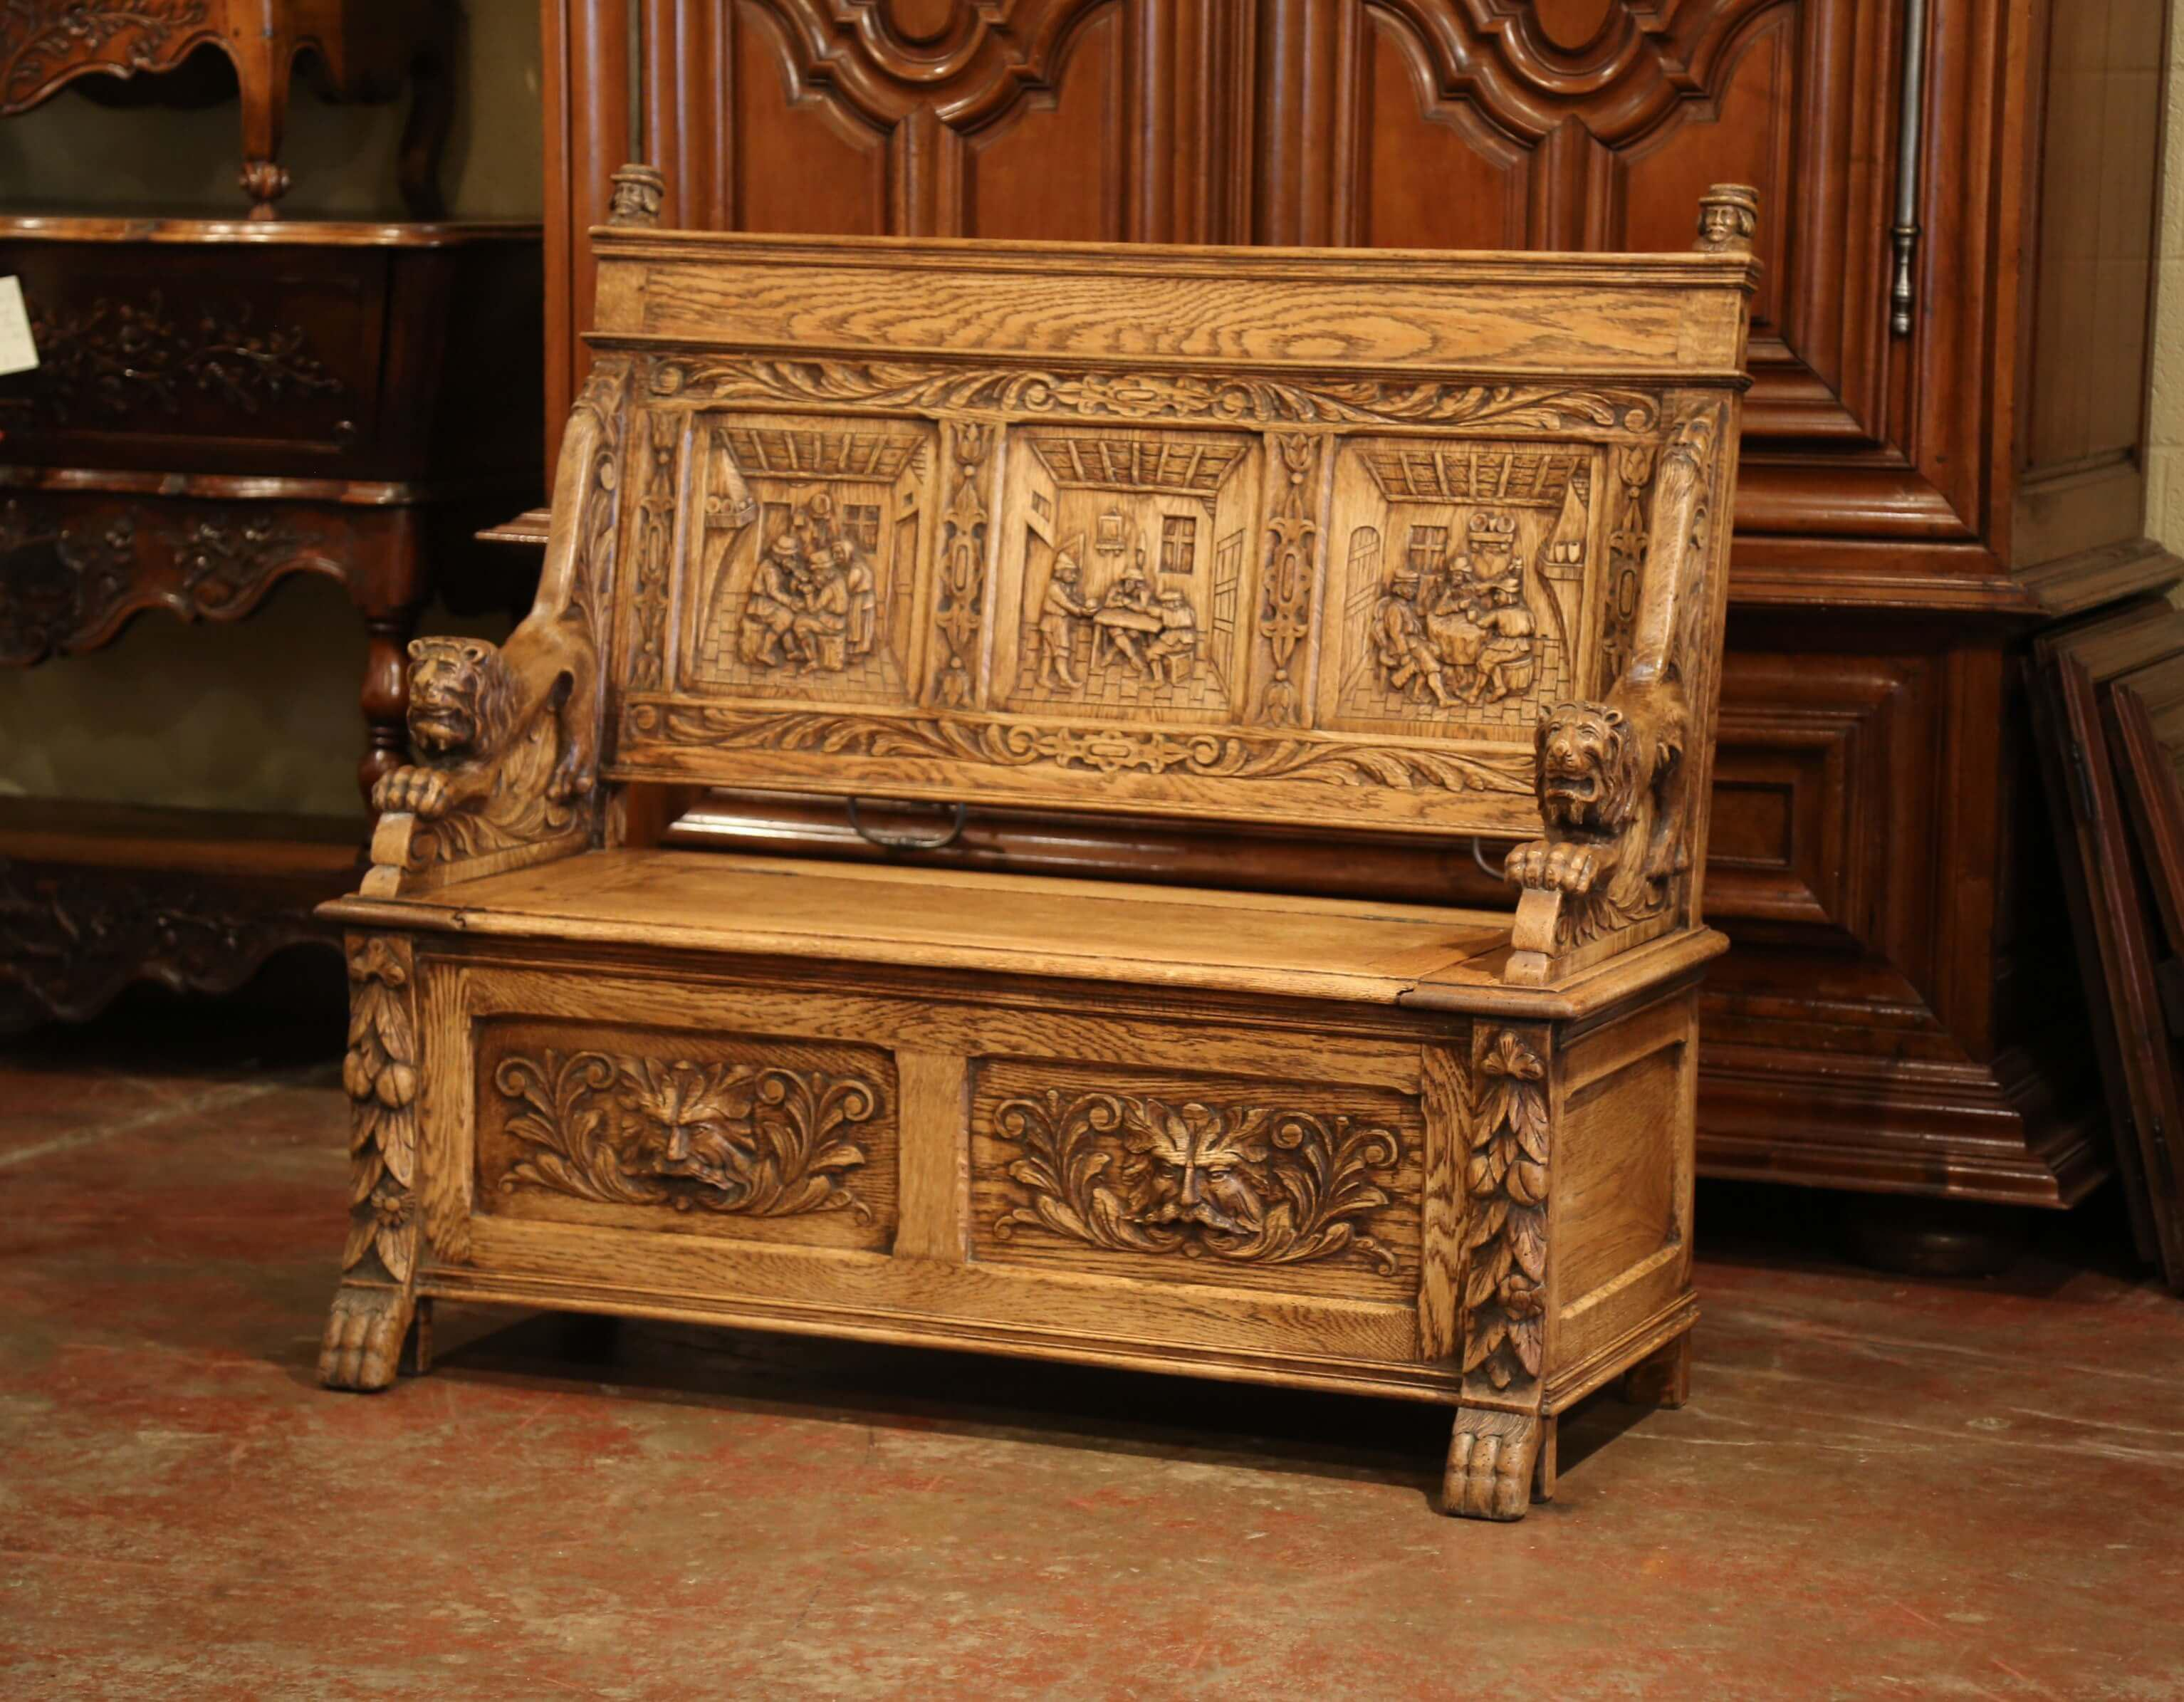 Exceptional 19th Century French Carved Oak Bench With Storage Trapdoor For  Sale In Dallas   Image